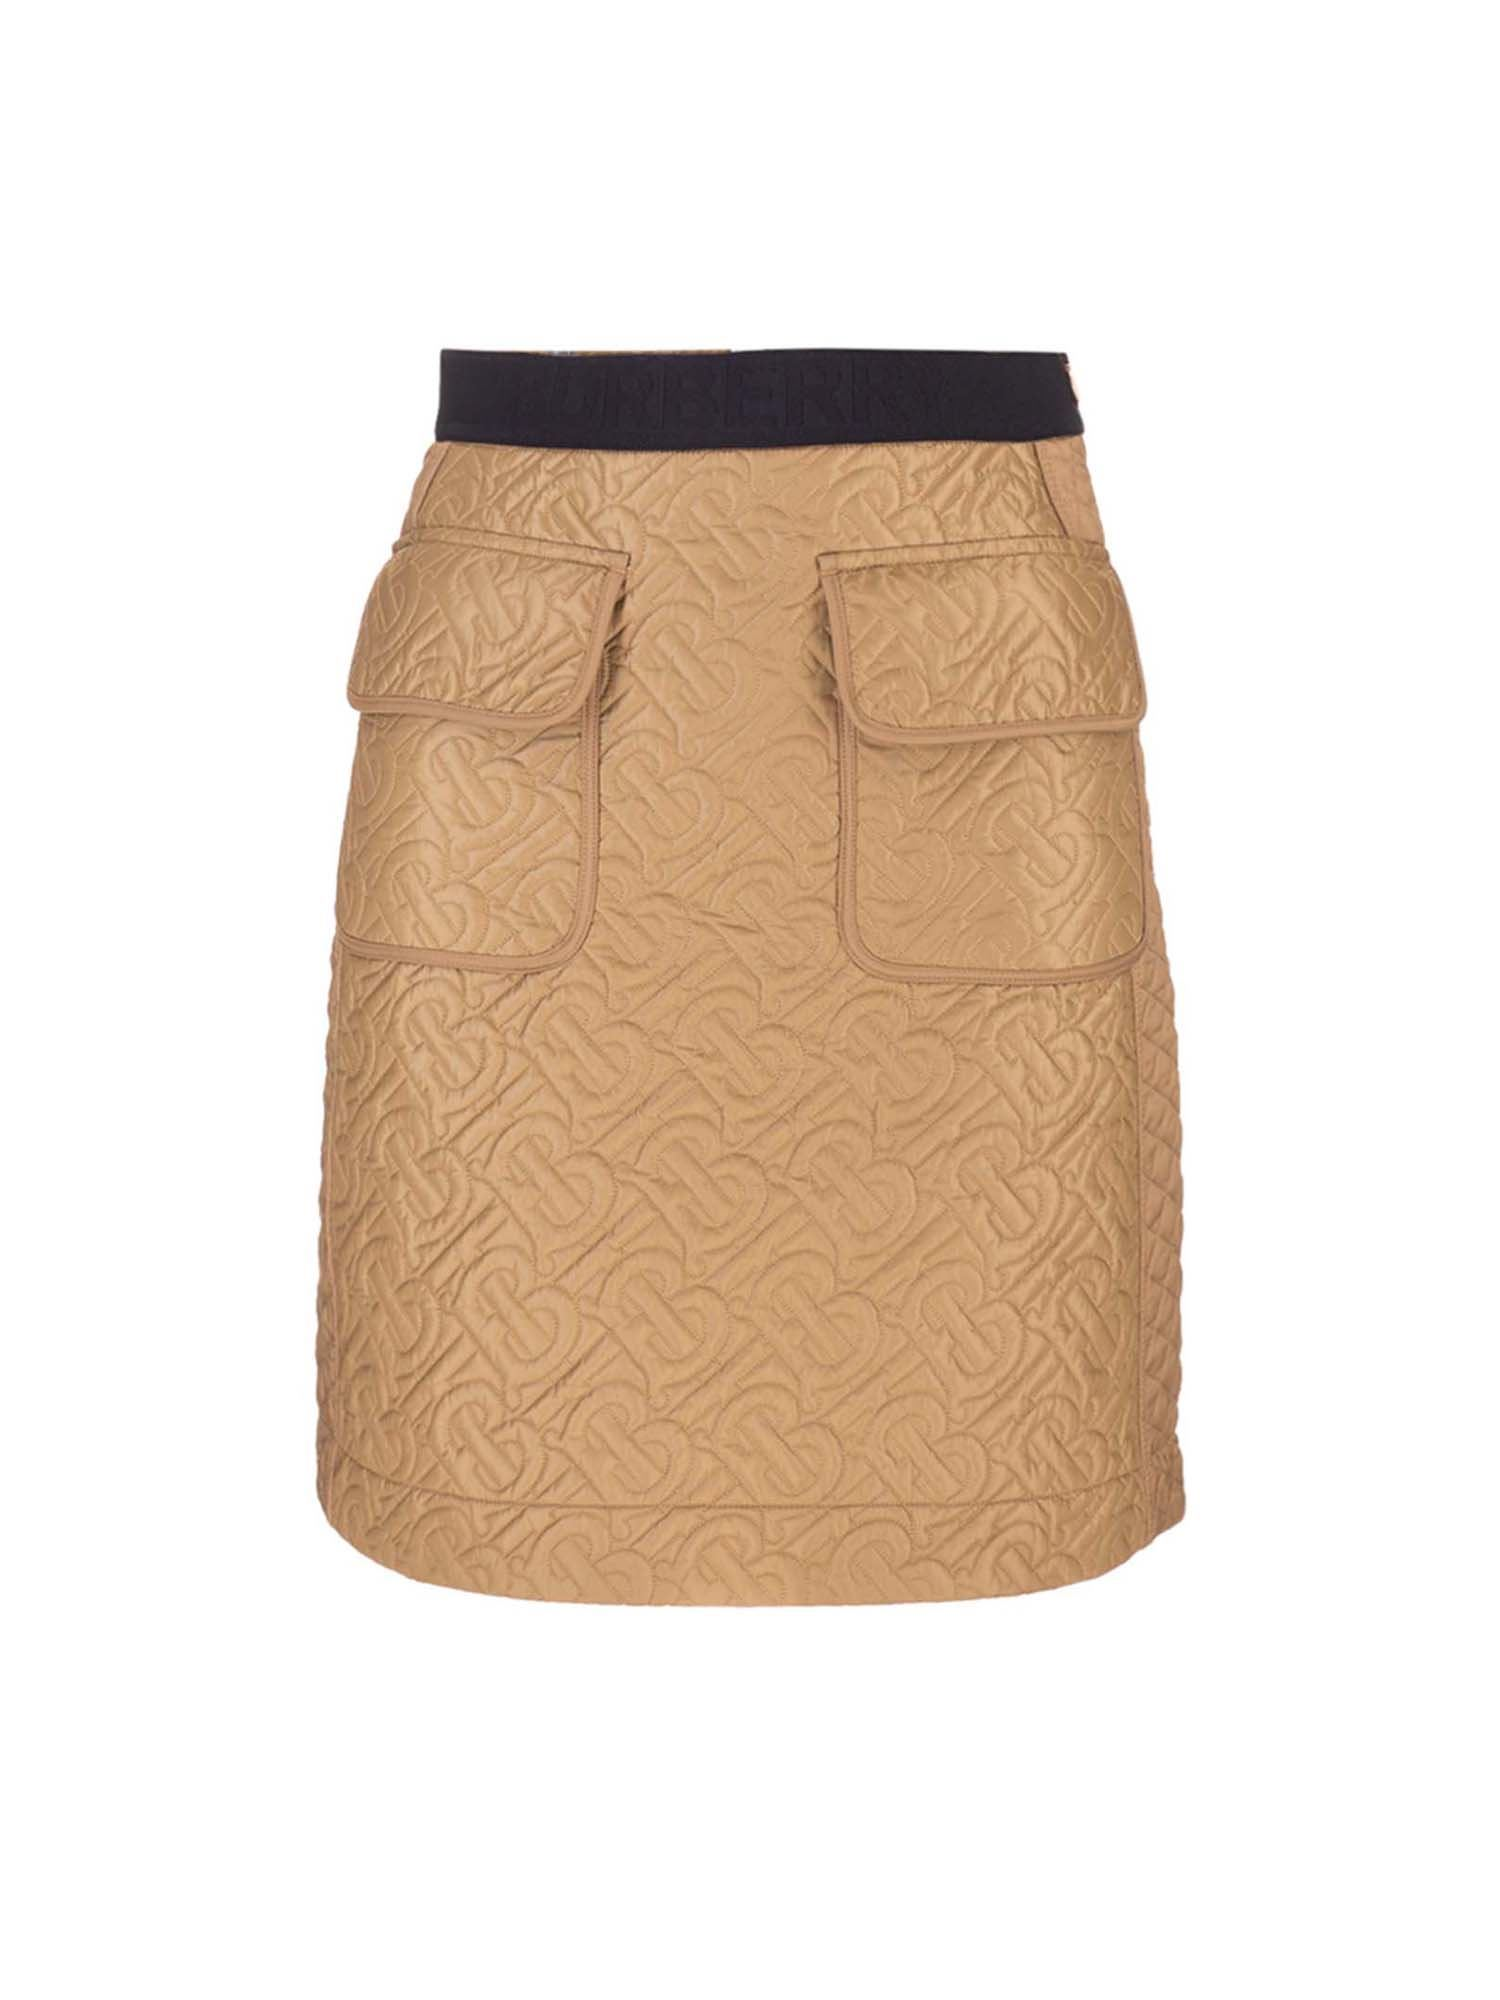 Burberry Linings QUILTED LOGO SKIRT IN BEIGE